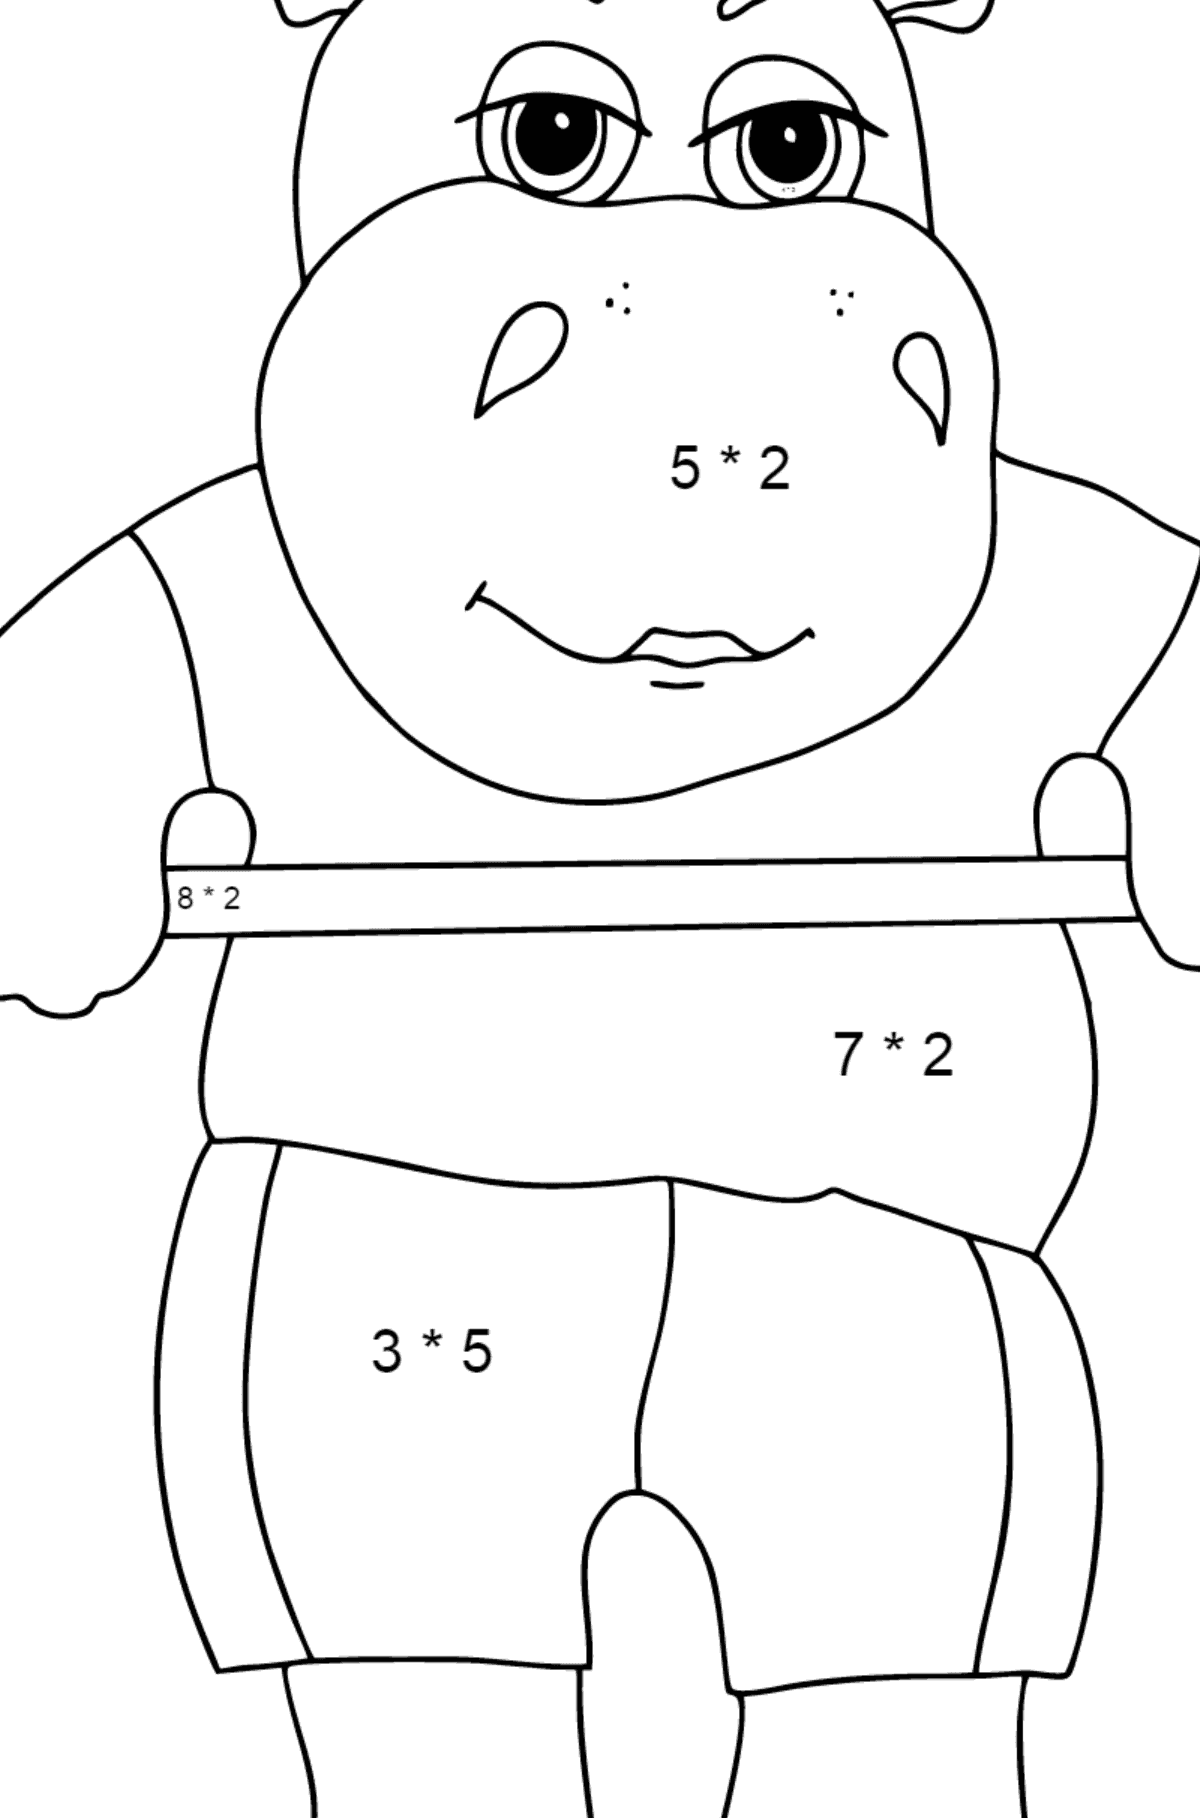 Coloring Page - A Hippo with a Barbell for Kids  - Color by Number Multiplication